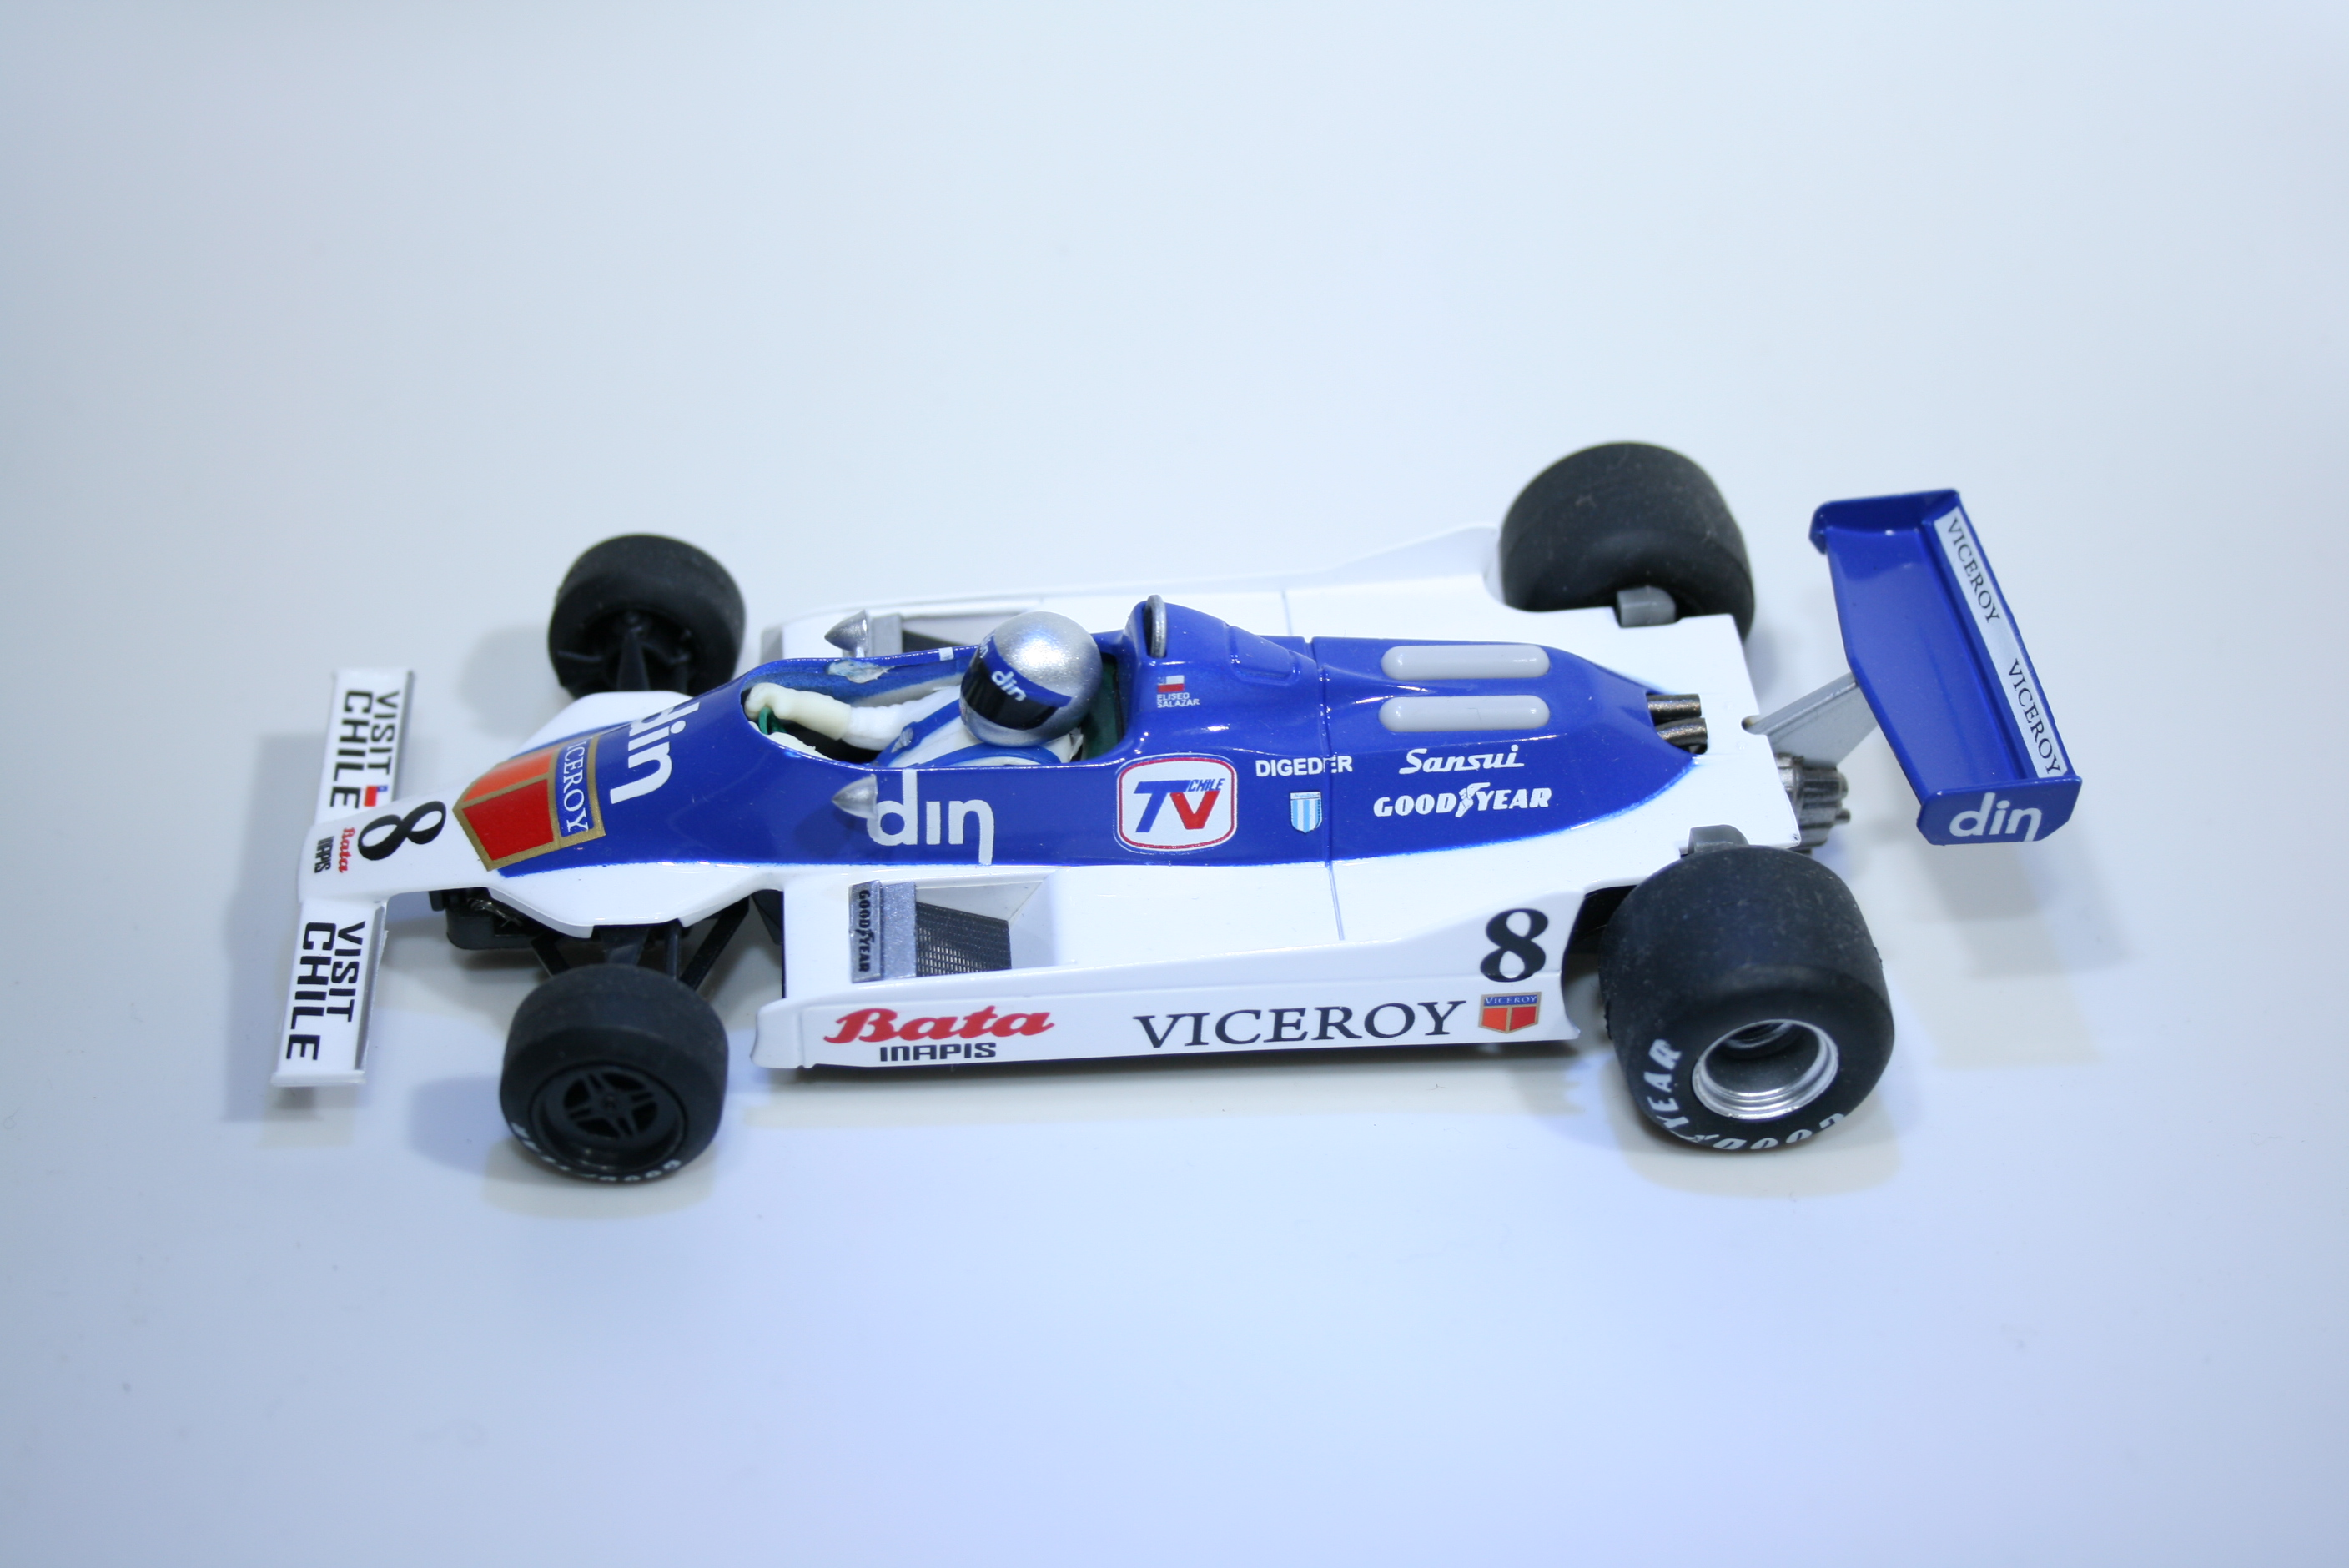 697 Williams FW07 1980 E Salazar Fly 055303 2009 Boxed